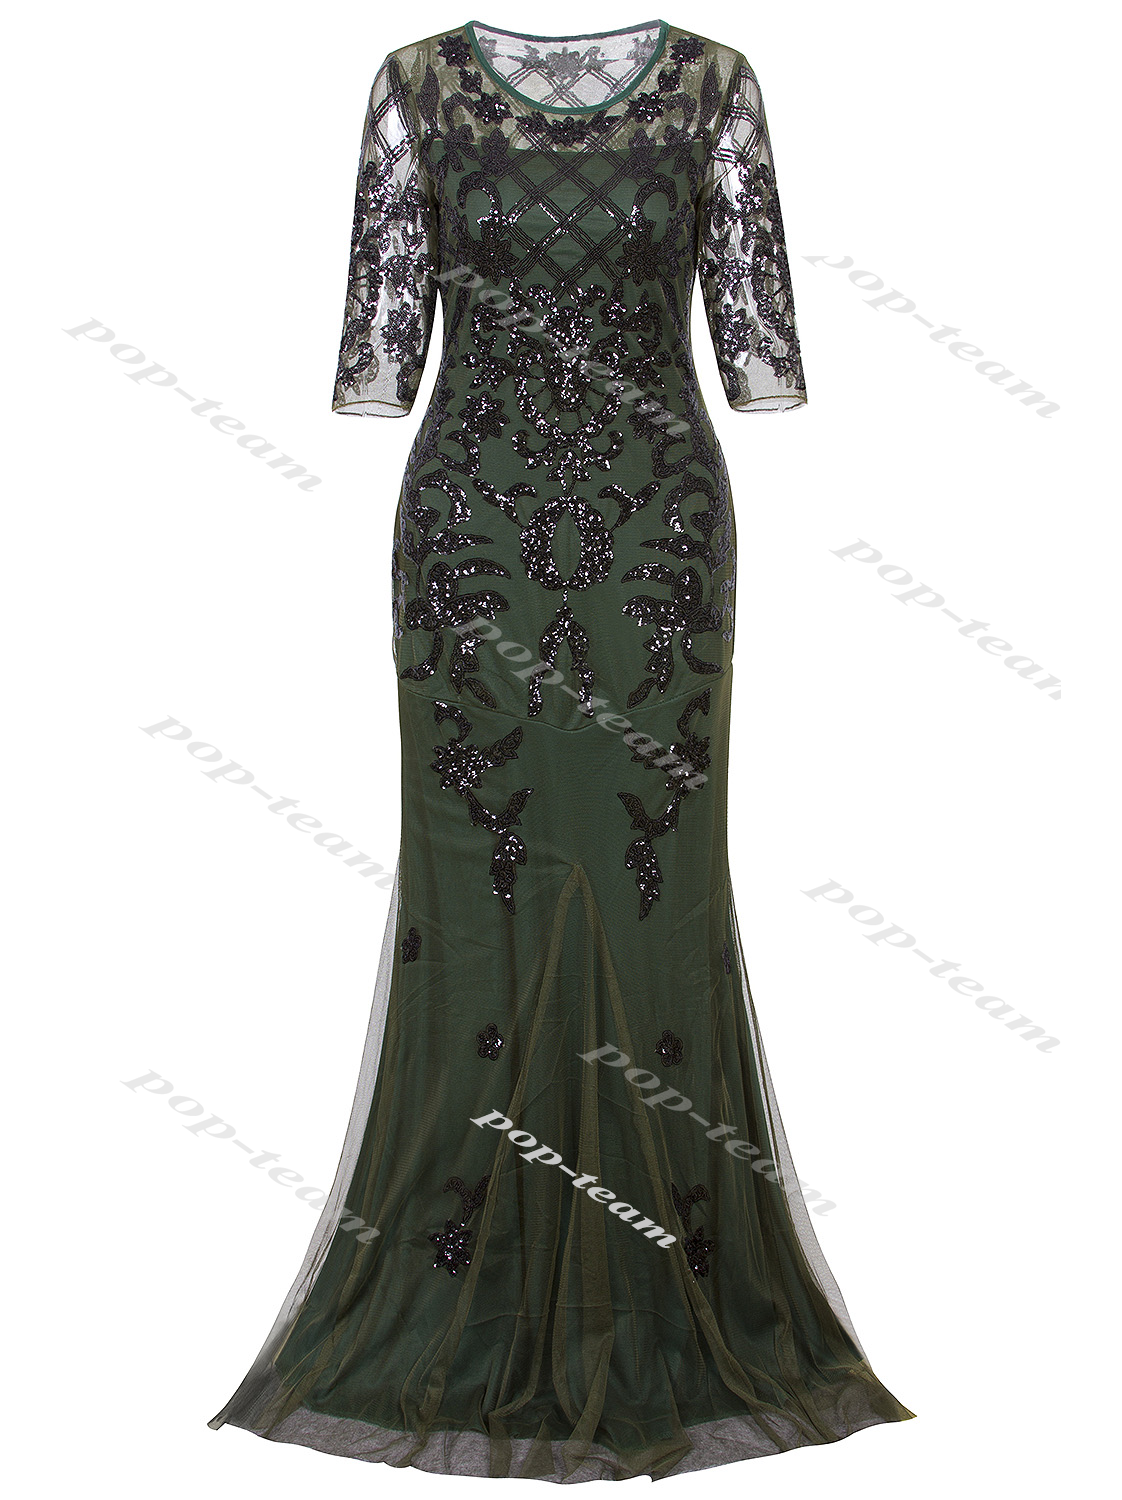 Great Mermaid Costume 1920s Flapper Gatsby Party Long Evening Maxi ...